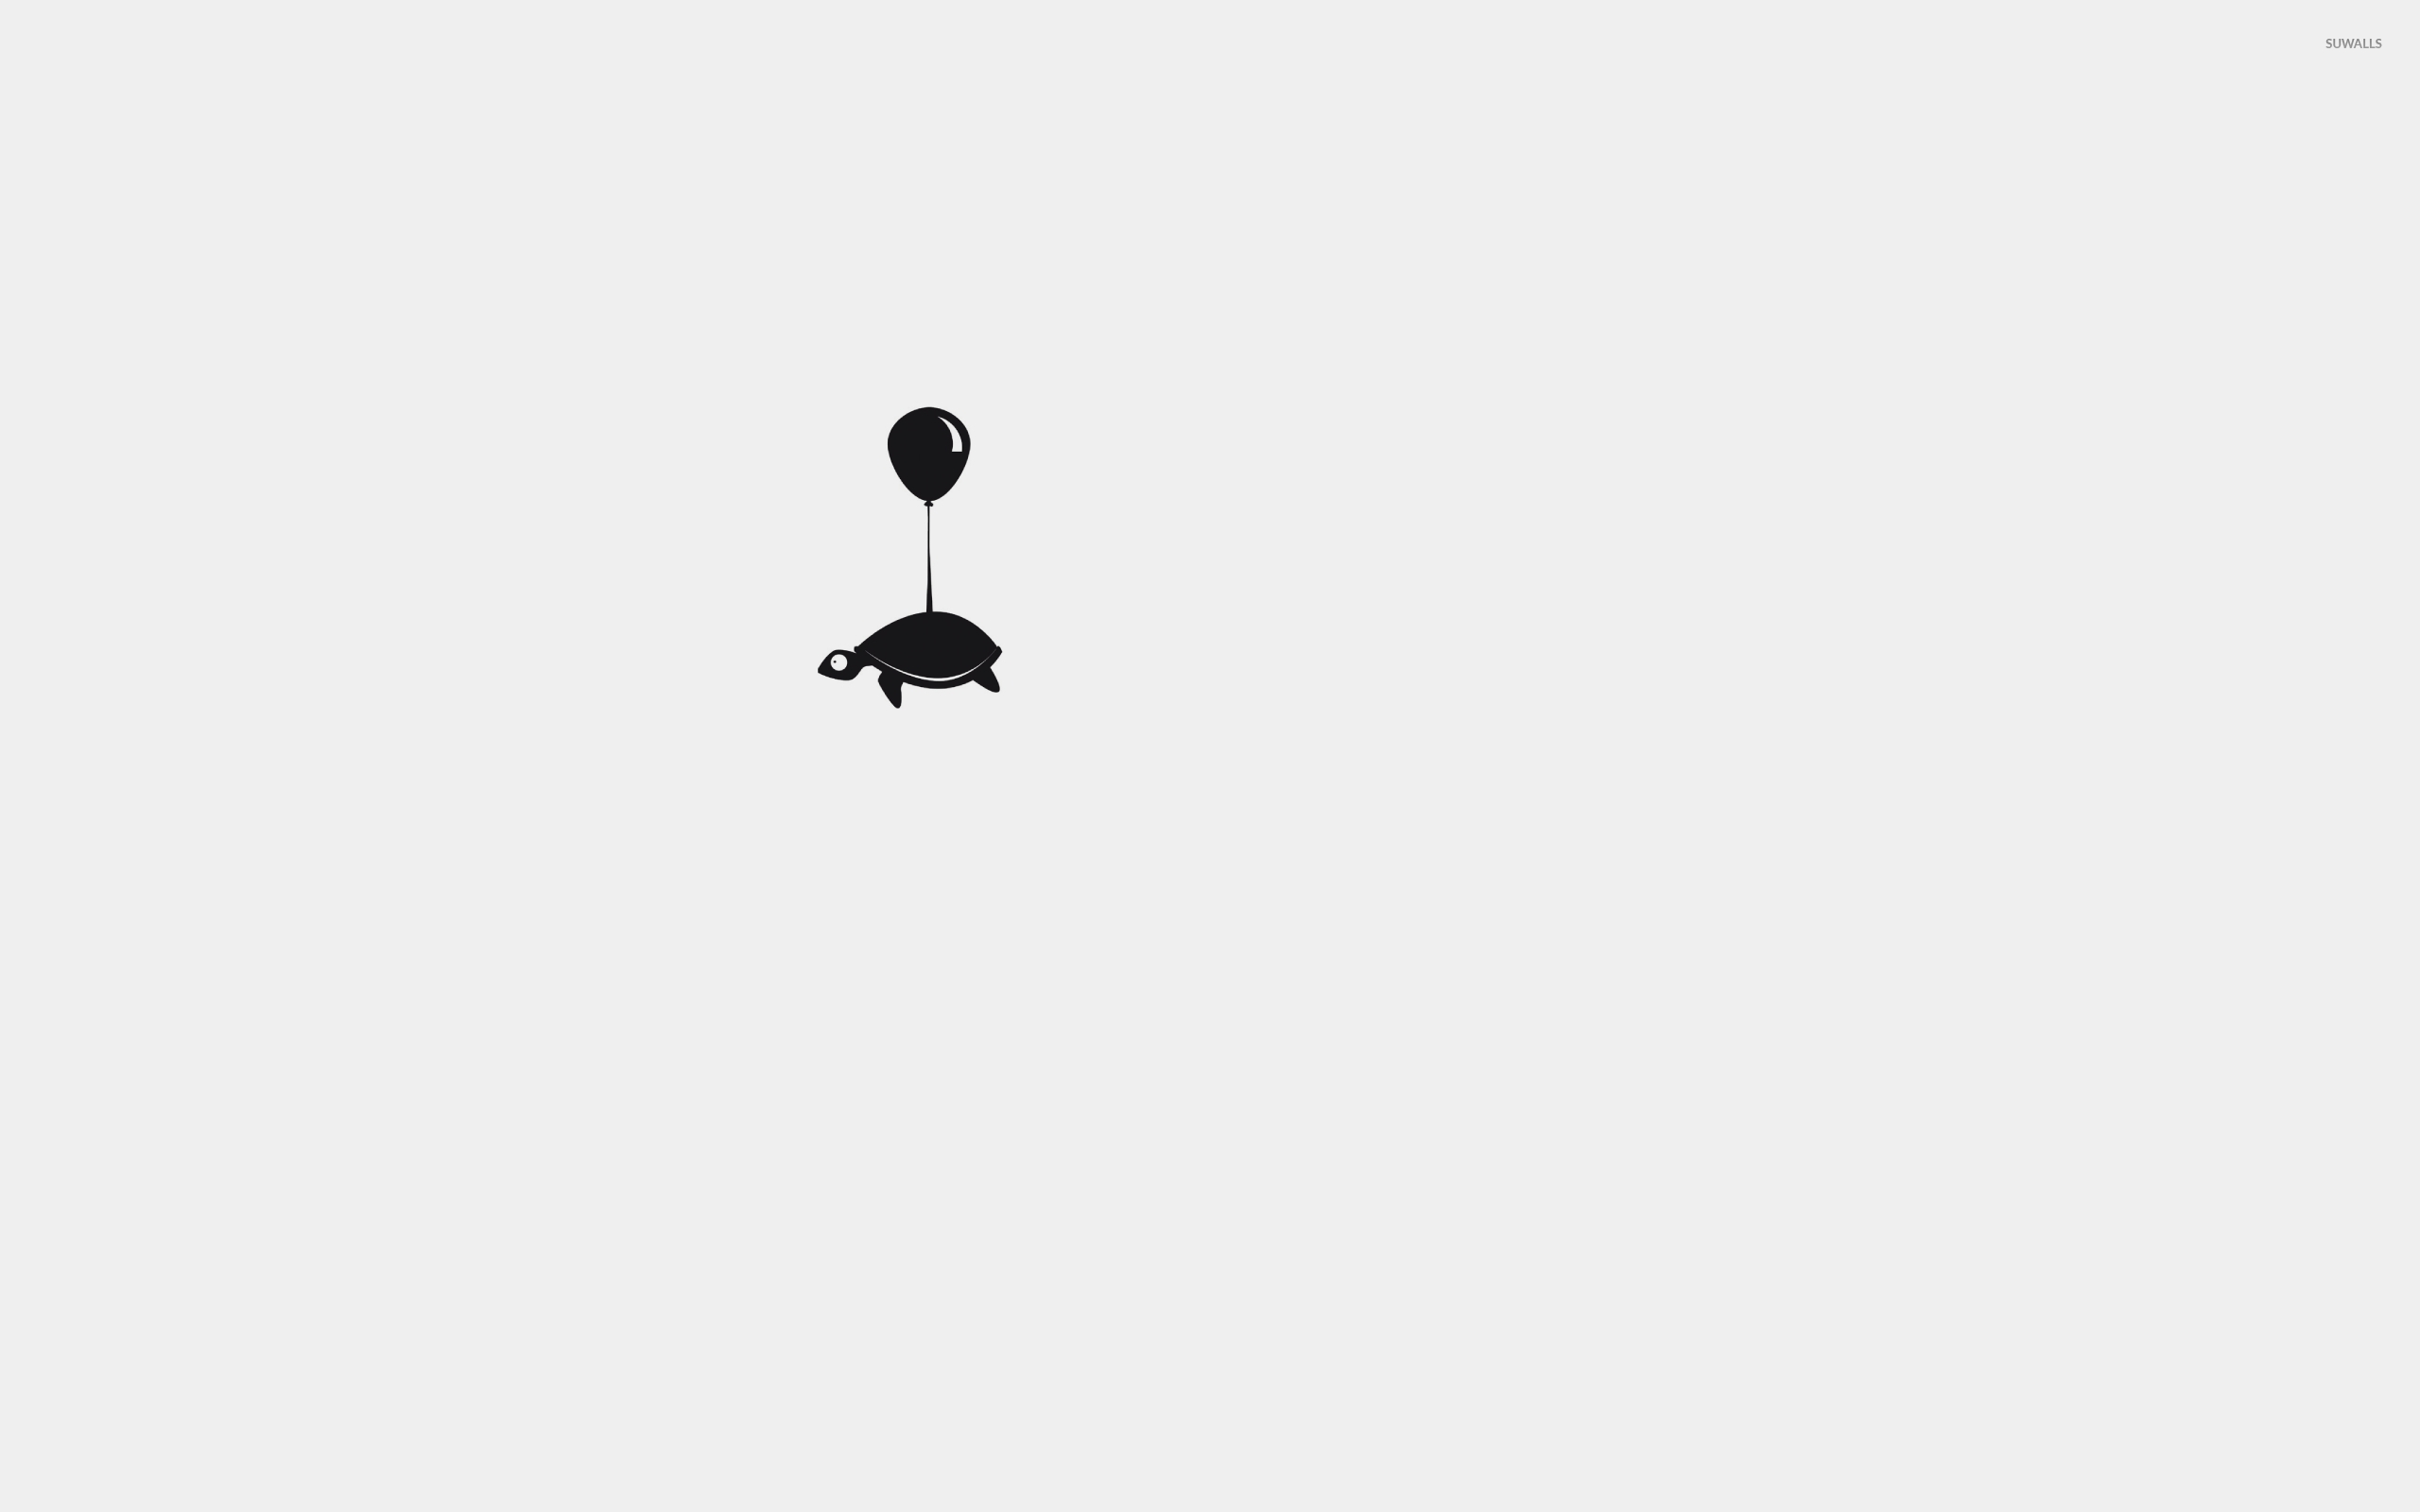 Turtle with a balloon wallpaper minimalistic wallpapers 41843